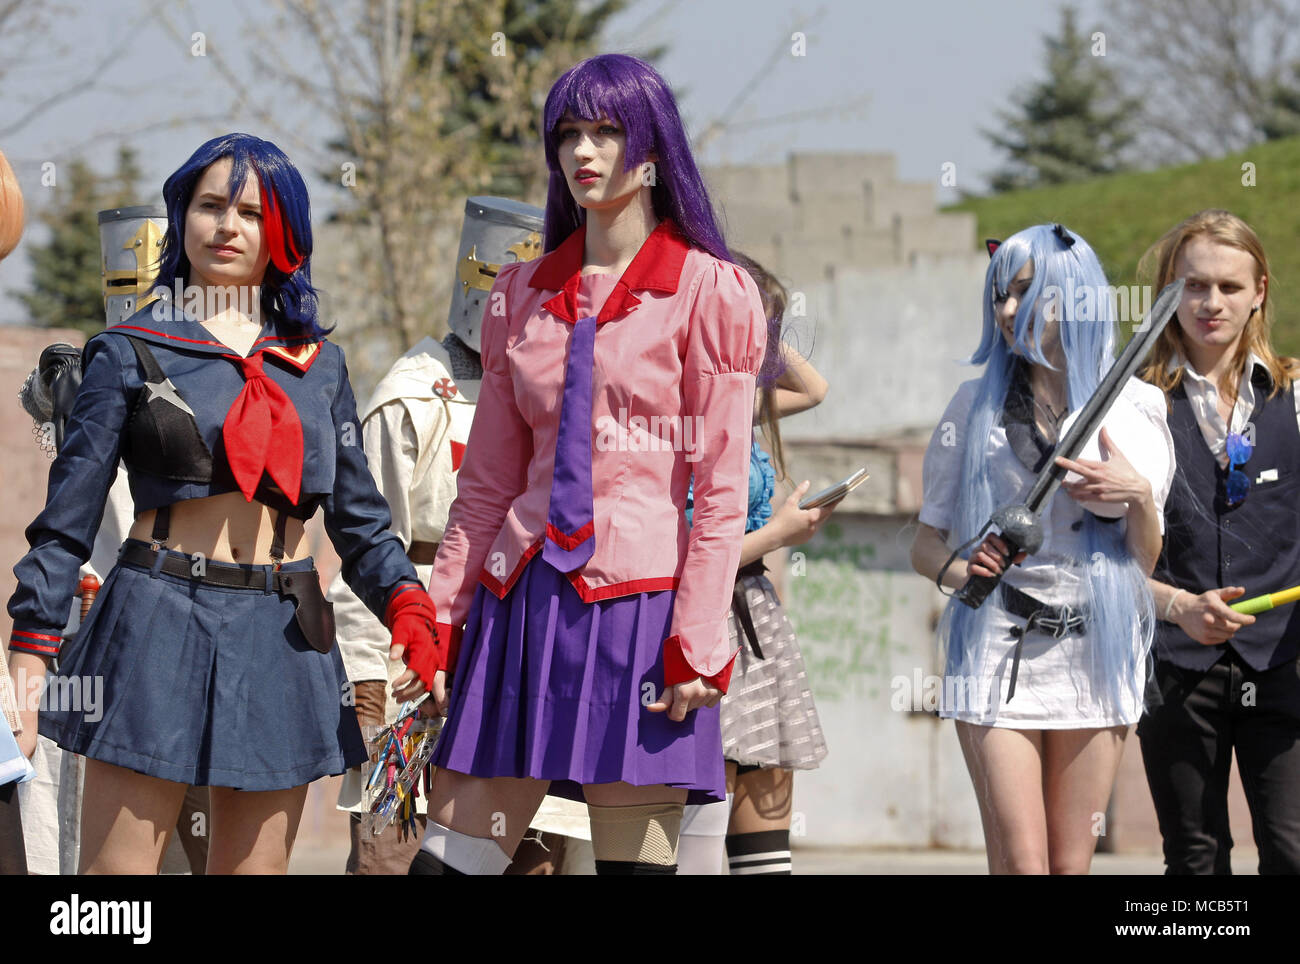 Participants dressed in costumes of anime characters attend anime march in center of kiev ukraine on 15 april 2018 the event attracts anime manga